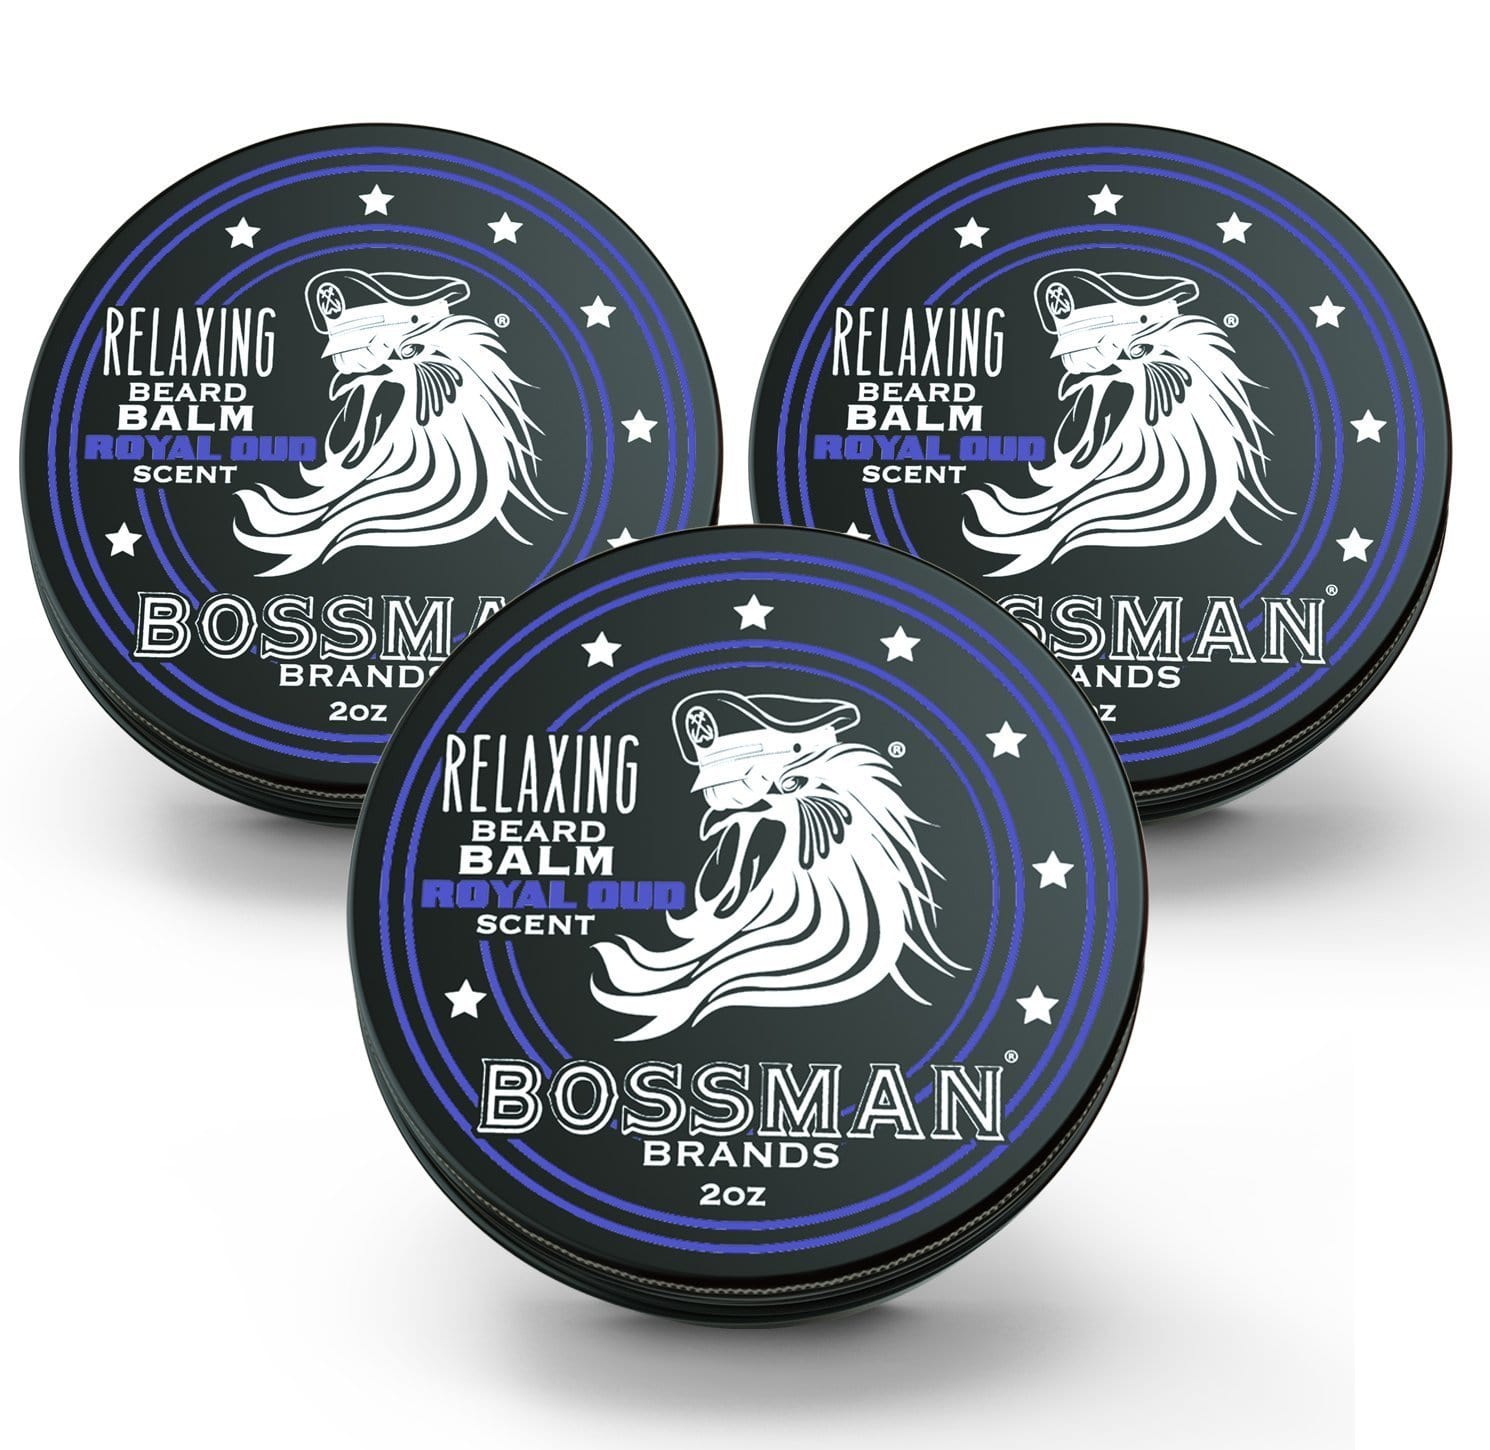 Bossman Relaxing Beard Balm - Royal Oud Scent 3 Pack